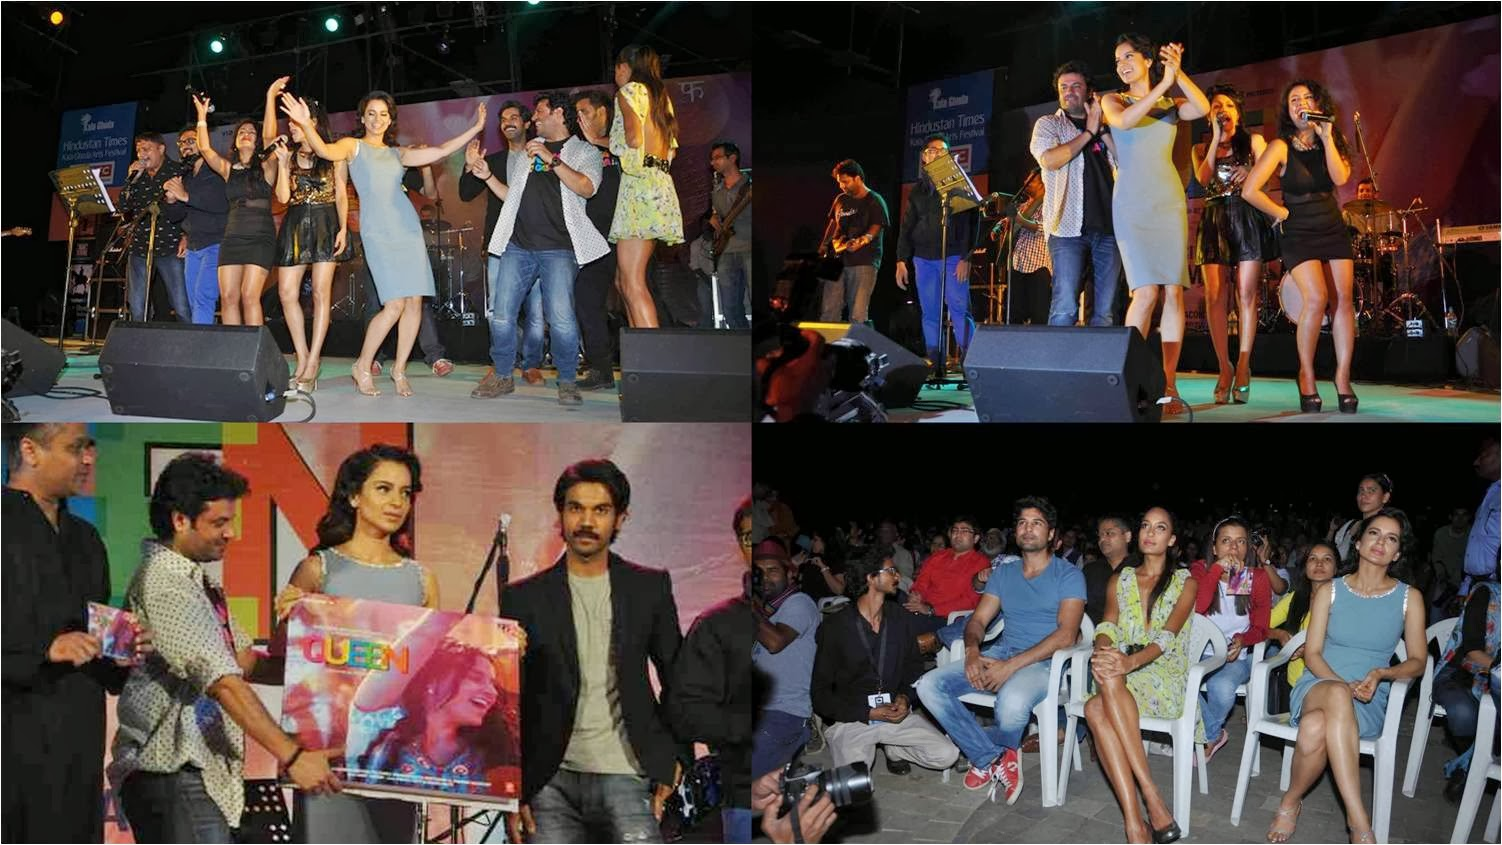 Kangana Ranaut dancing and enjoying with team at Queen music launch event